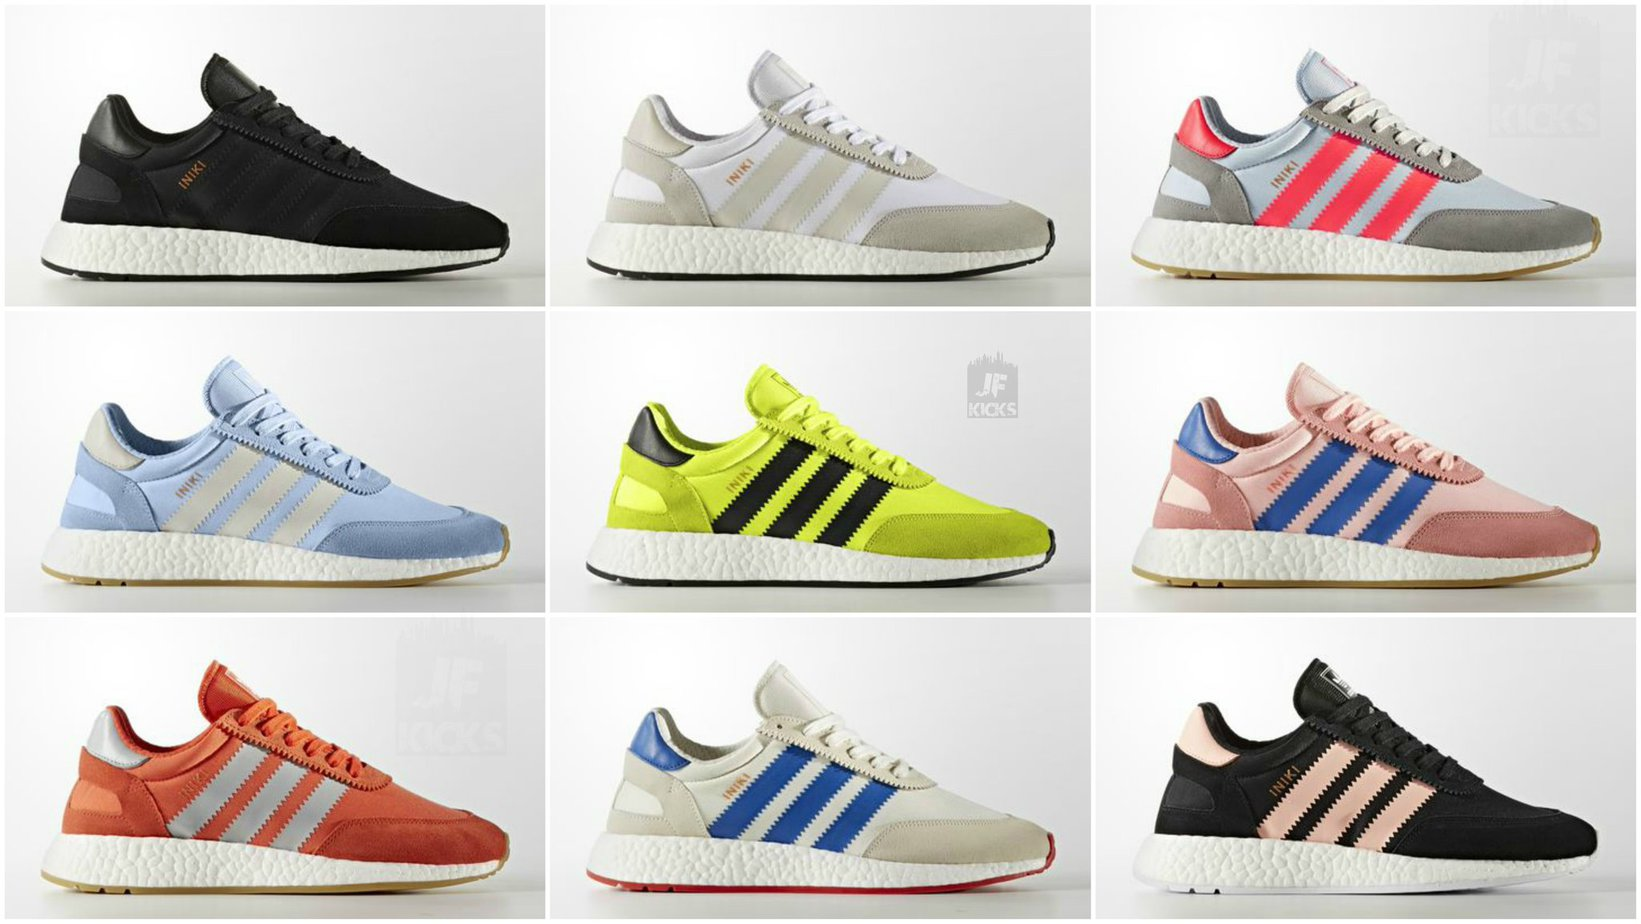 527fa61e8428 adidas Iniki Runner Collection Pages  Scroll down for direct links